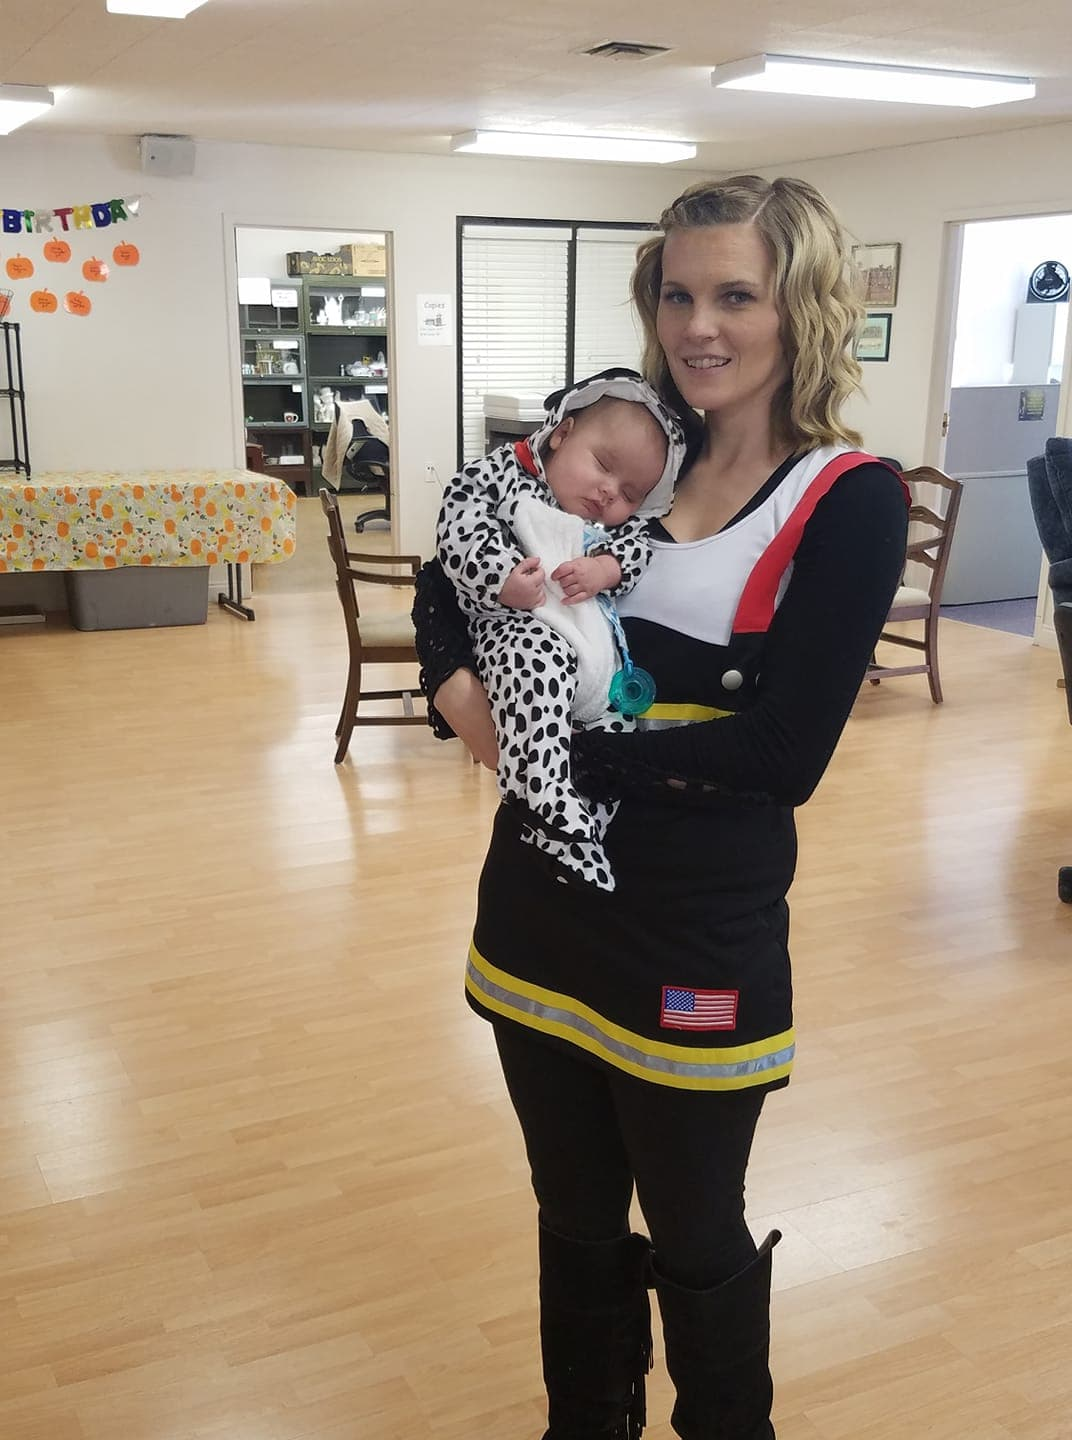 Fireman and dalmatian mommy and me Halloween costume